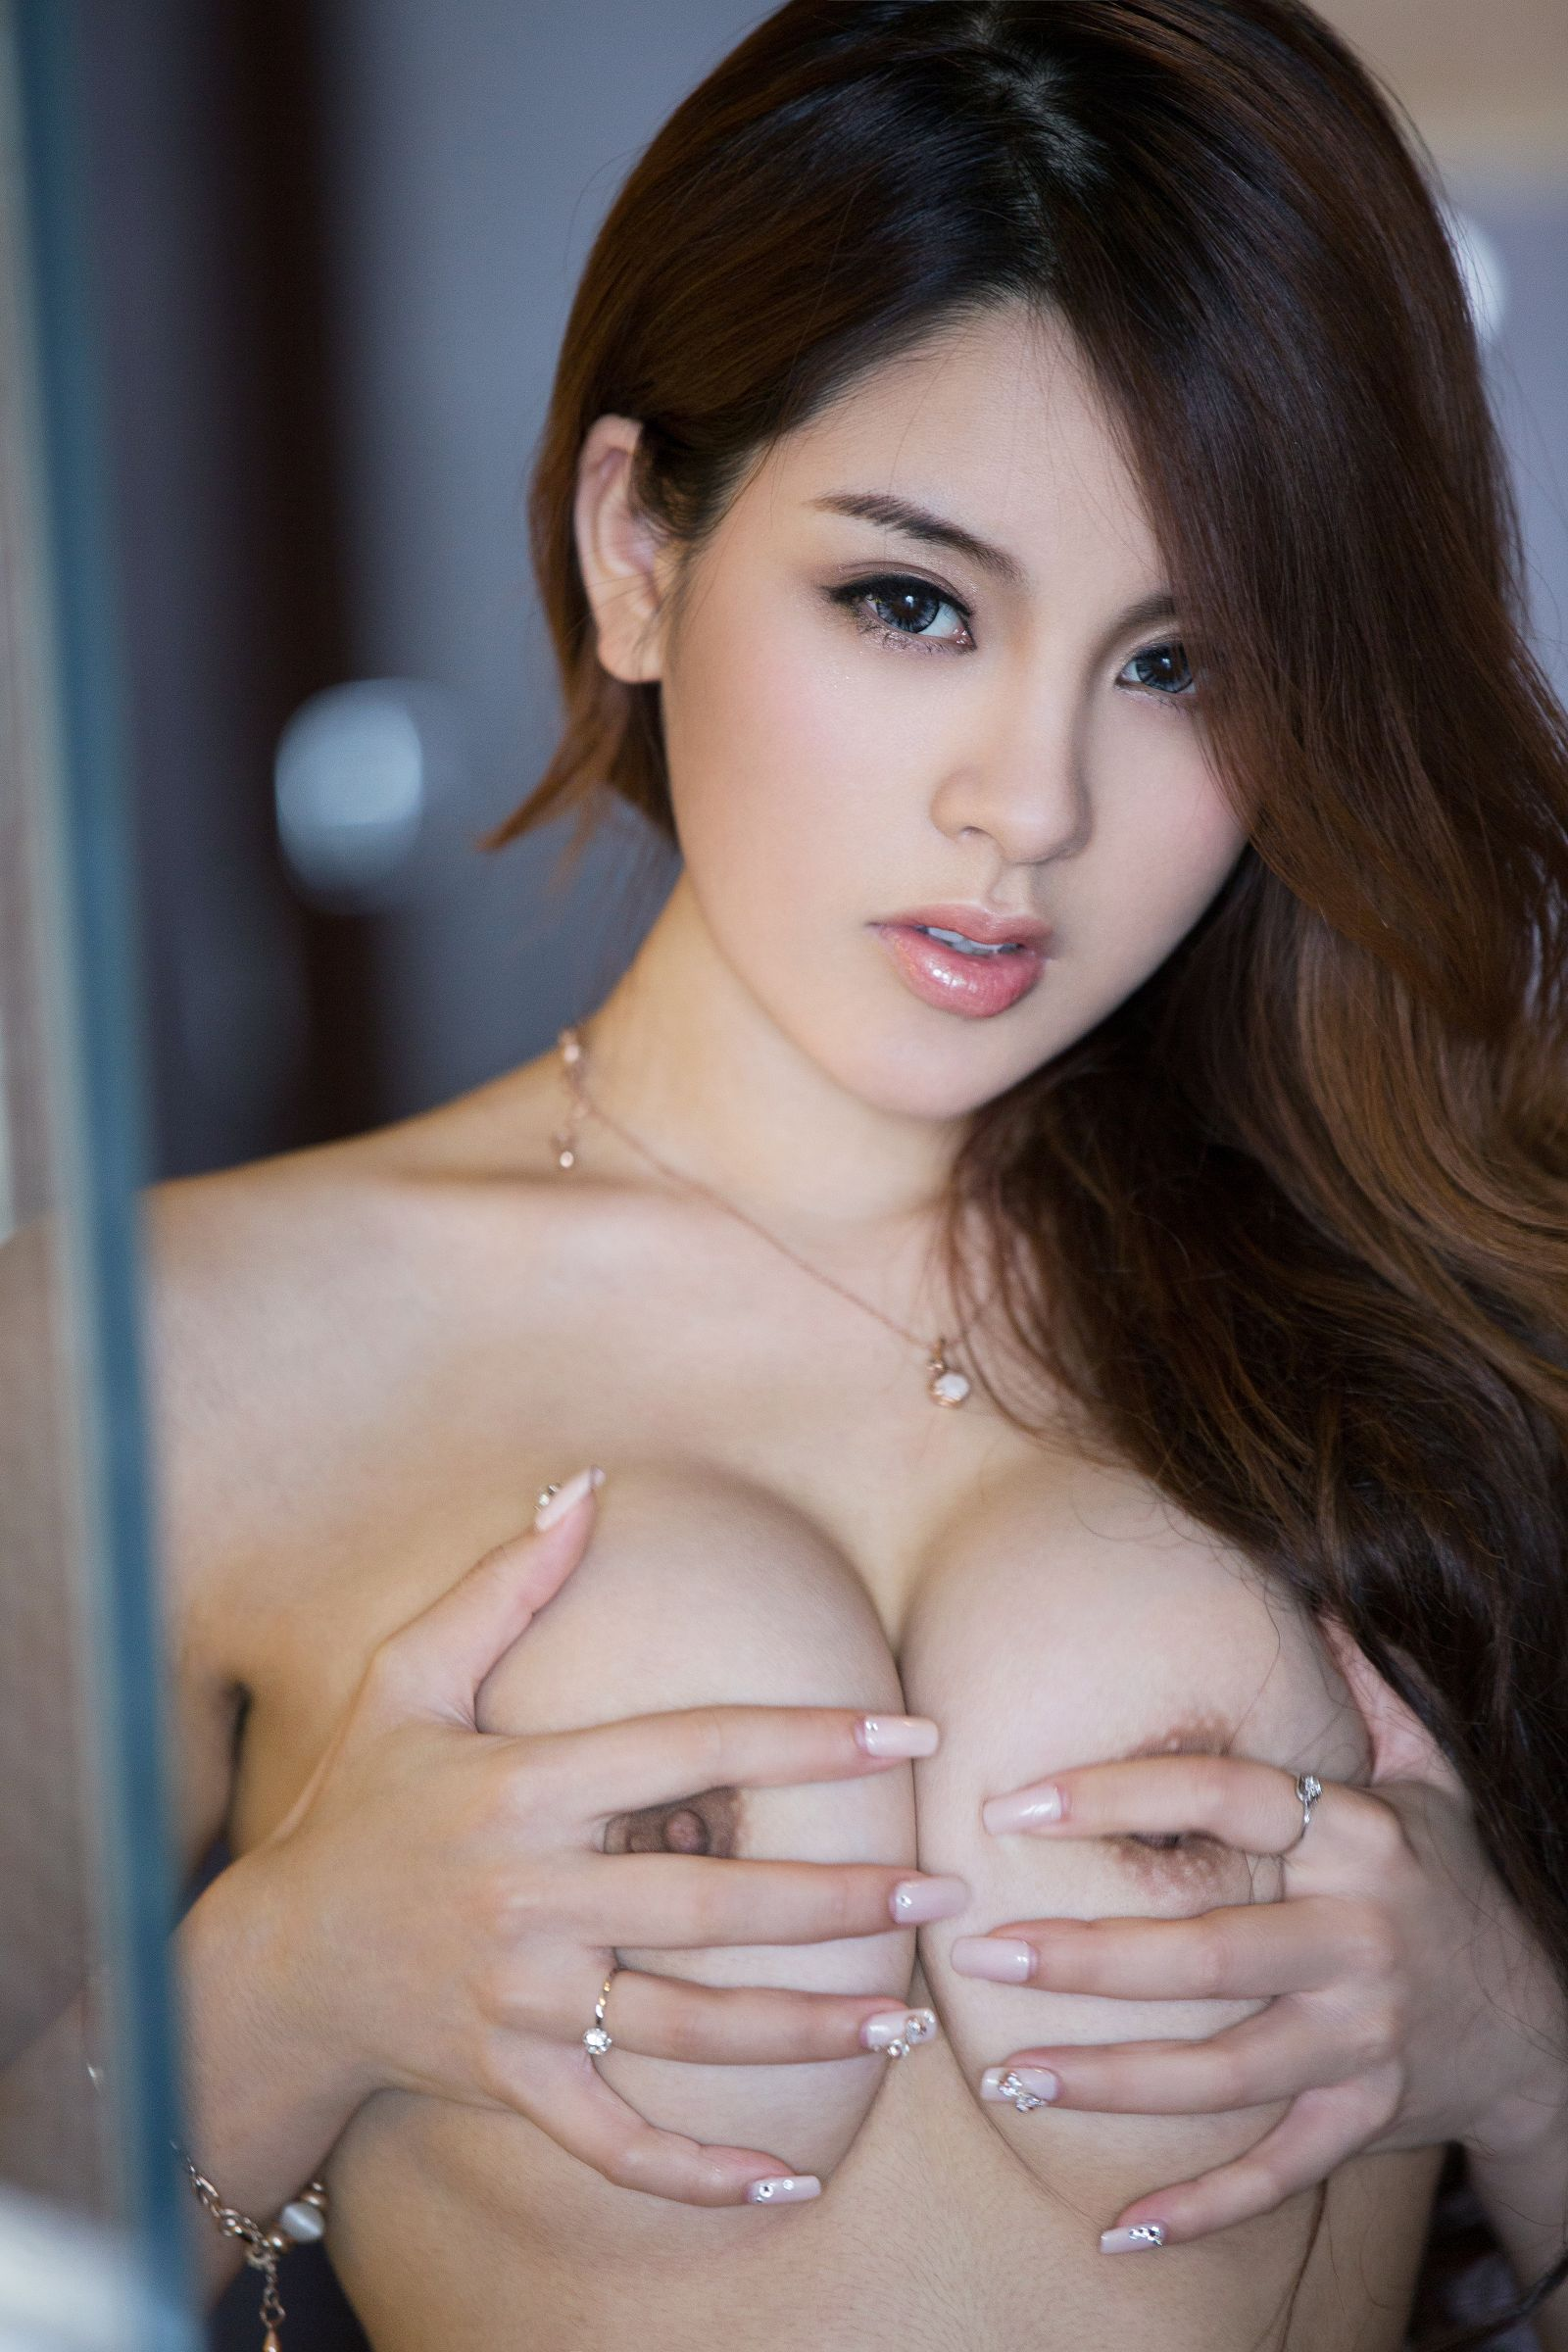 moving pictures of hot naked asian women